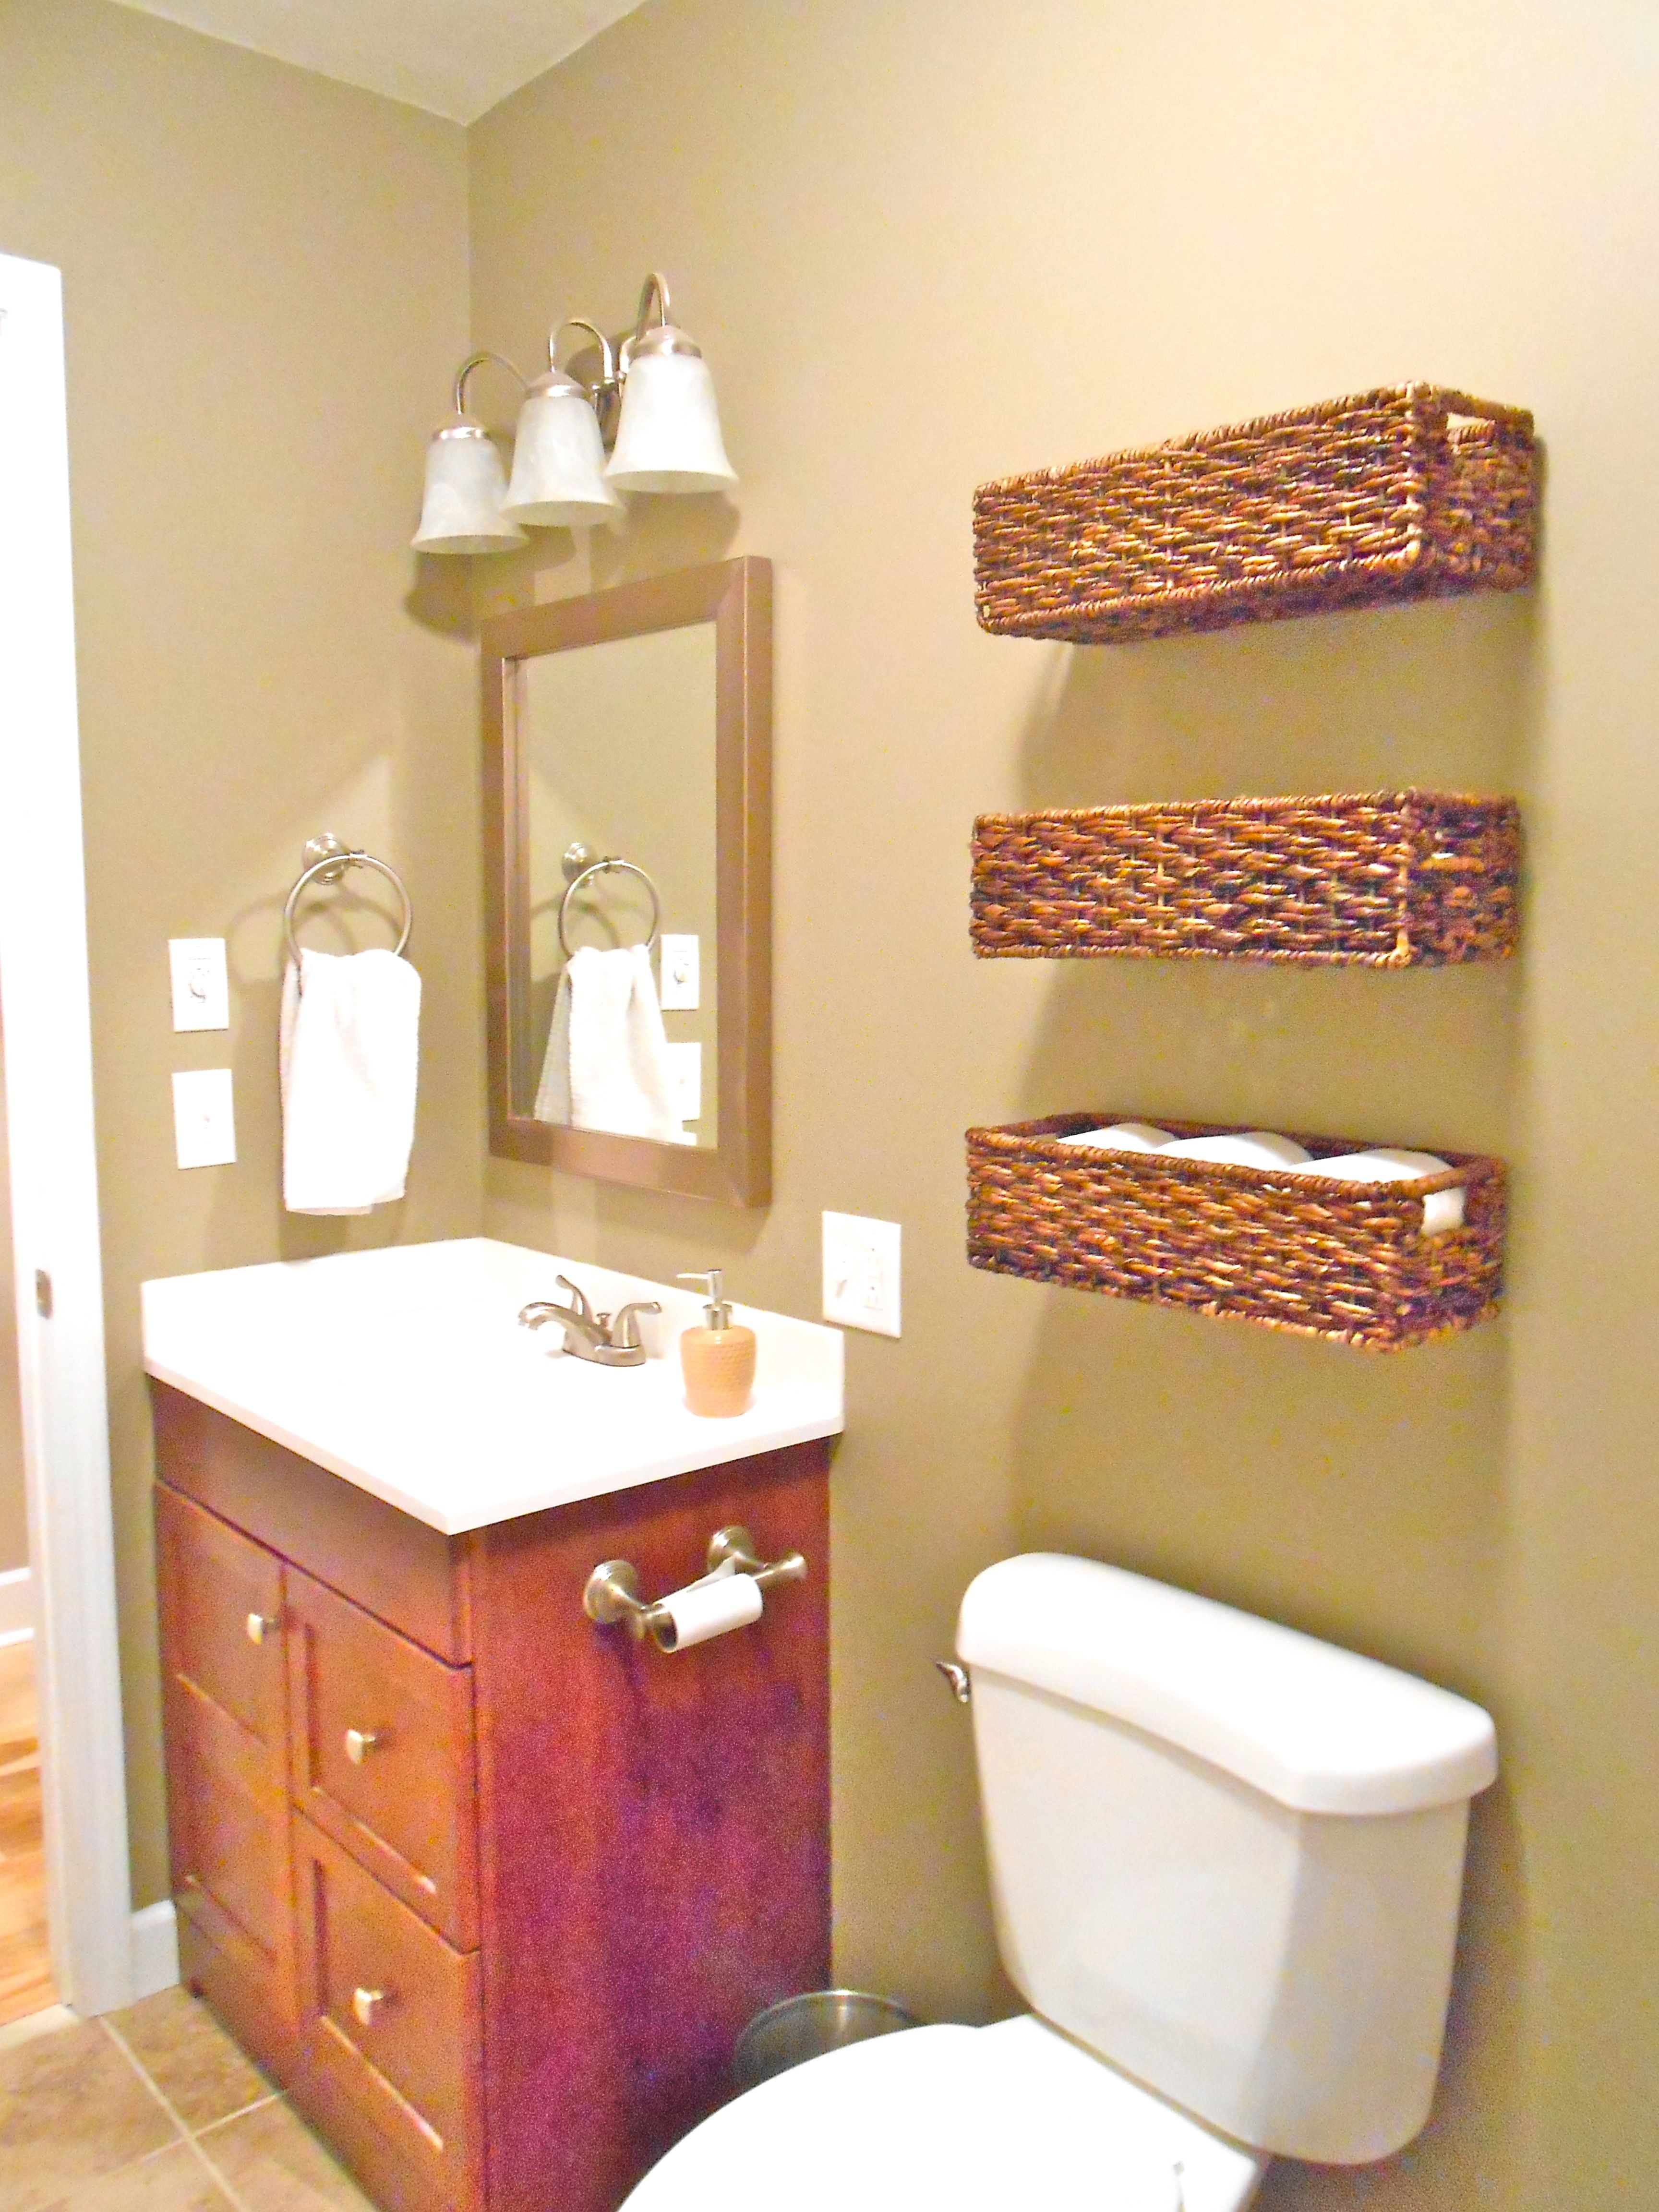 Wooden Baskets For Bathroom Wall Google Search Tiny Bathroom - Wall baskets for towels for small bathroom ideas